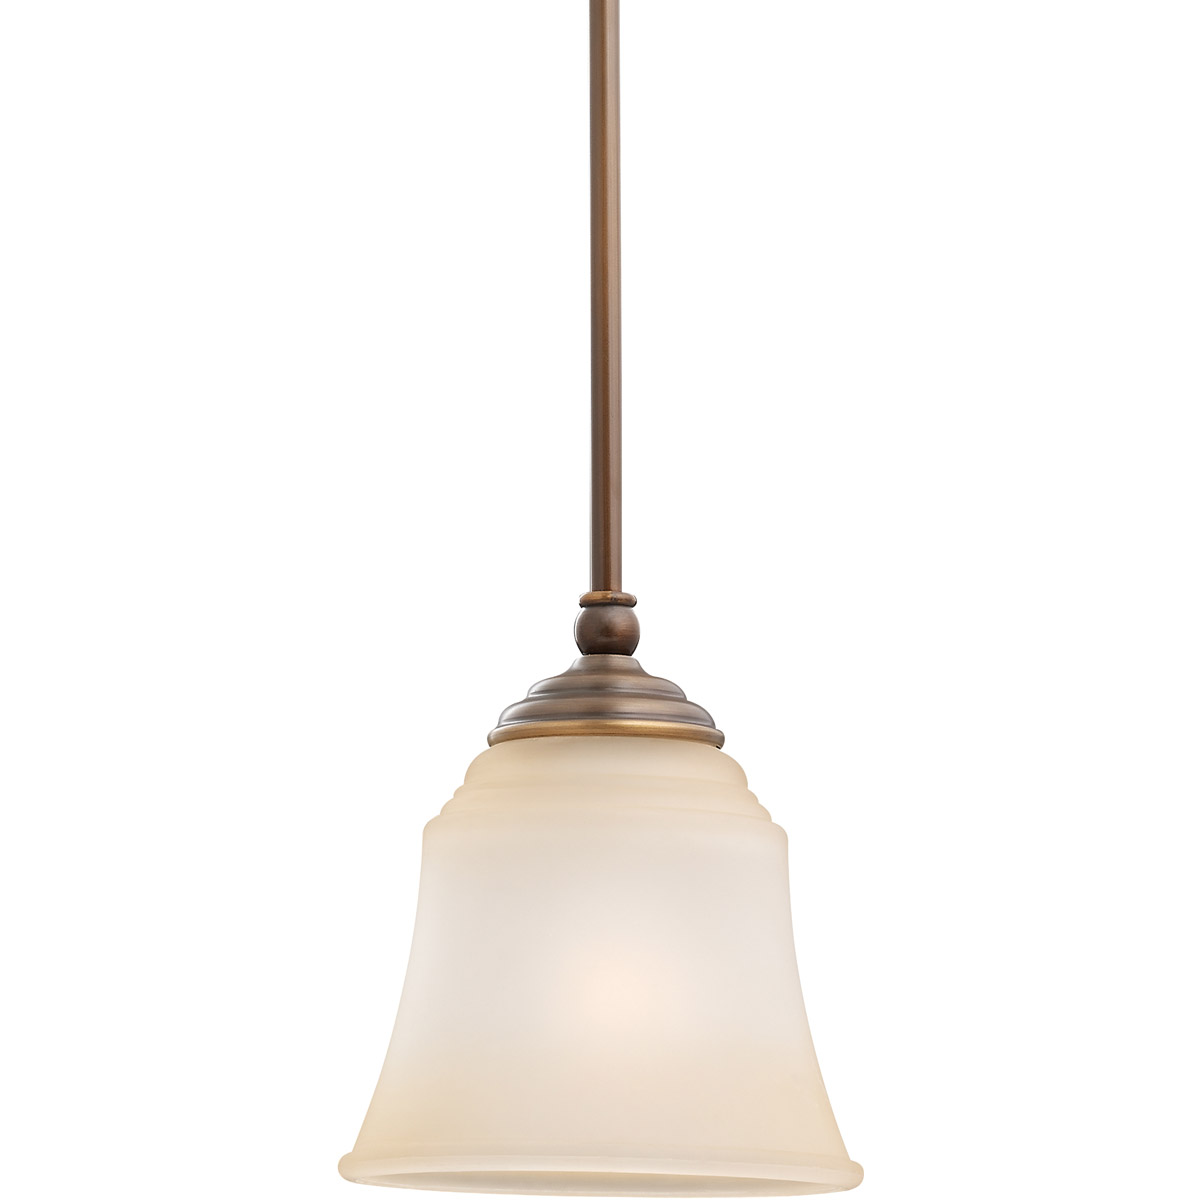 Sea Gull Lighting Parkview 1 Light Mini Pendant in Russet Bronze 61380-829